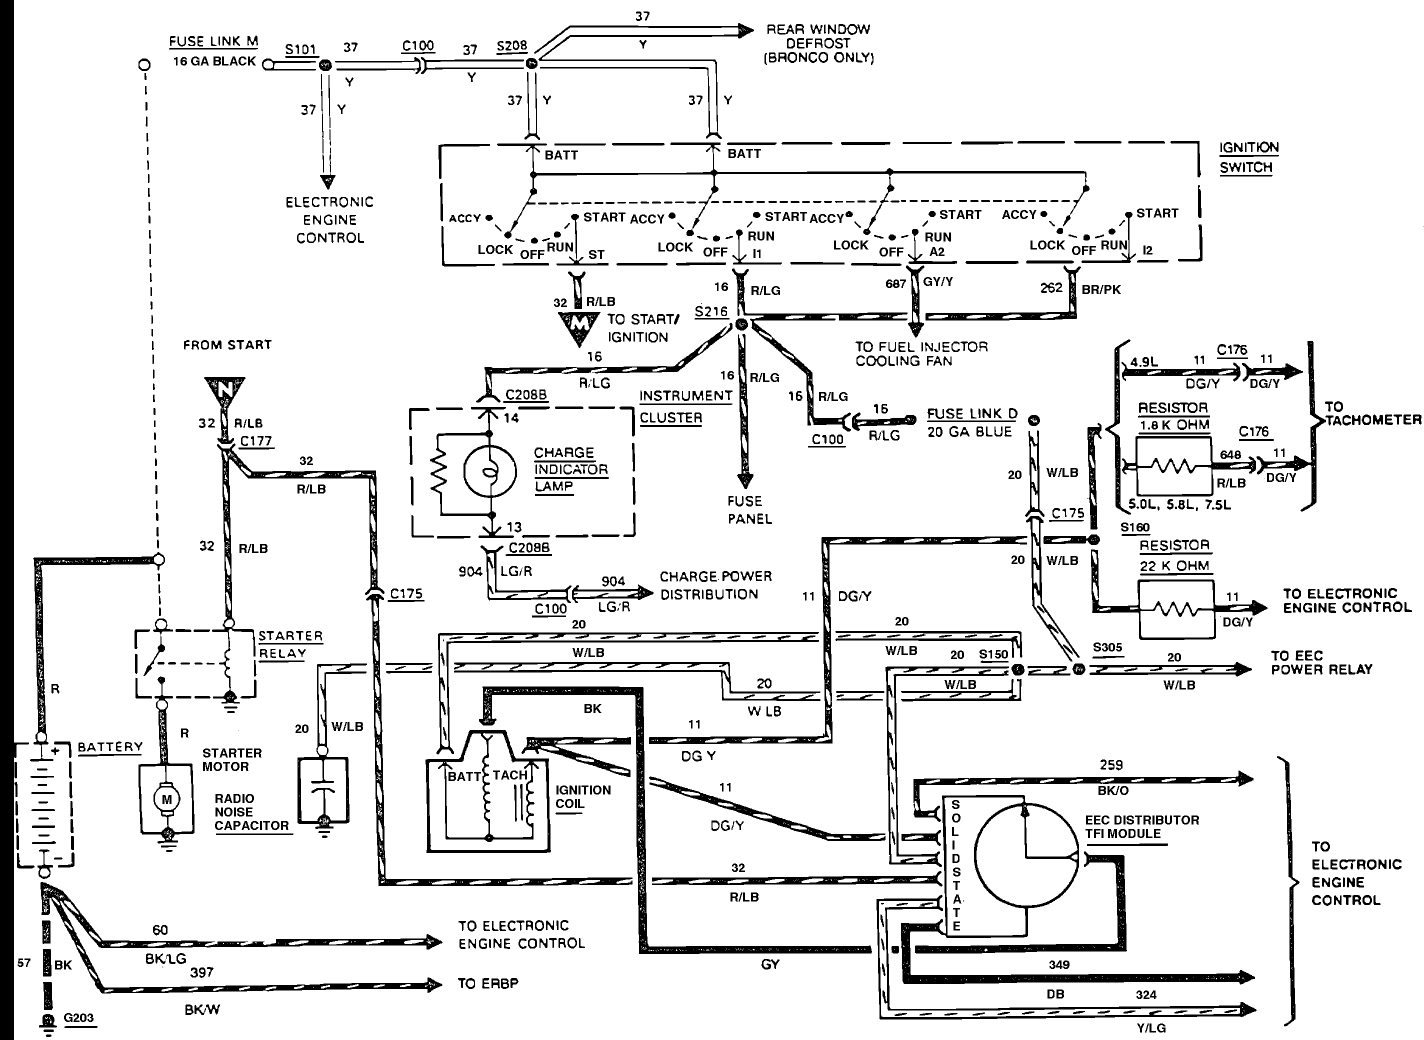 Ford F250 Wiring Diagram from wholefoodsonabudget.com